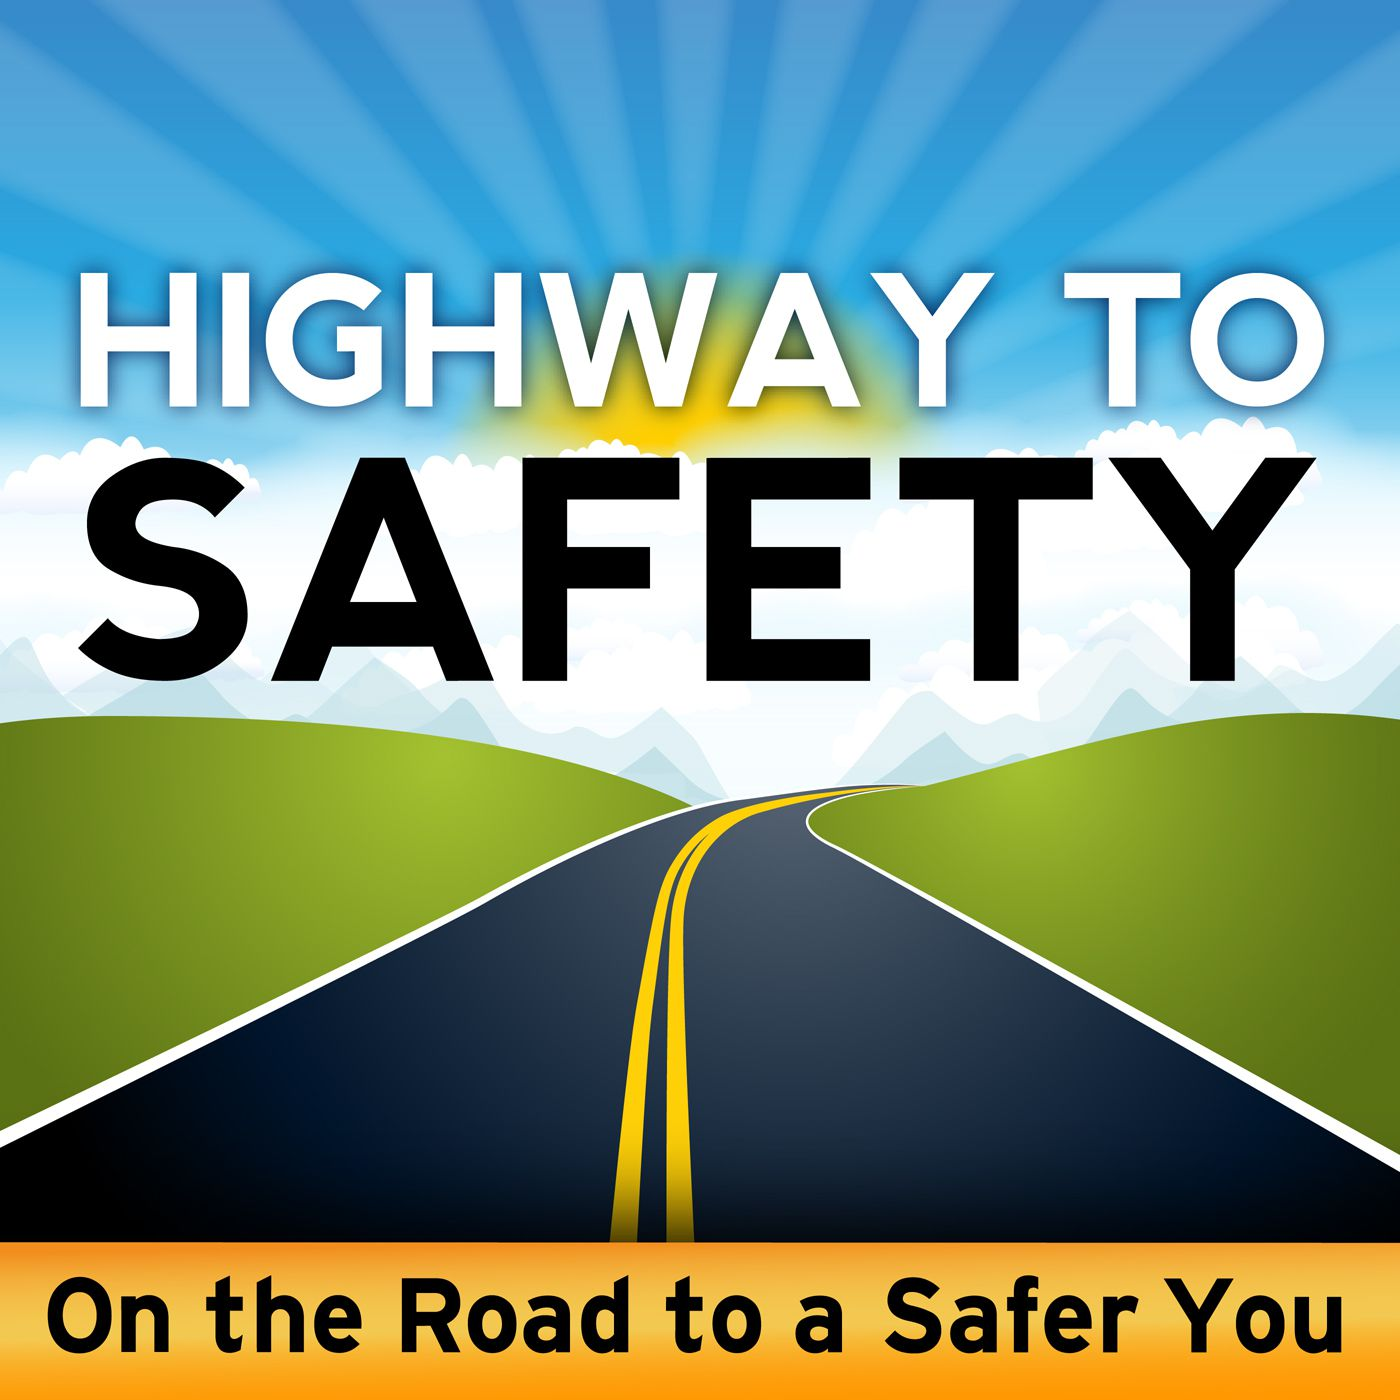 Highway to Safety | Road Safety / Traffic Safety Guy